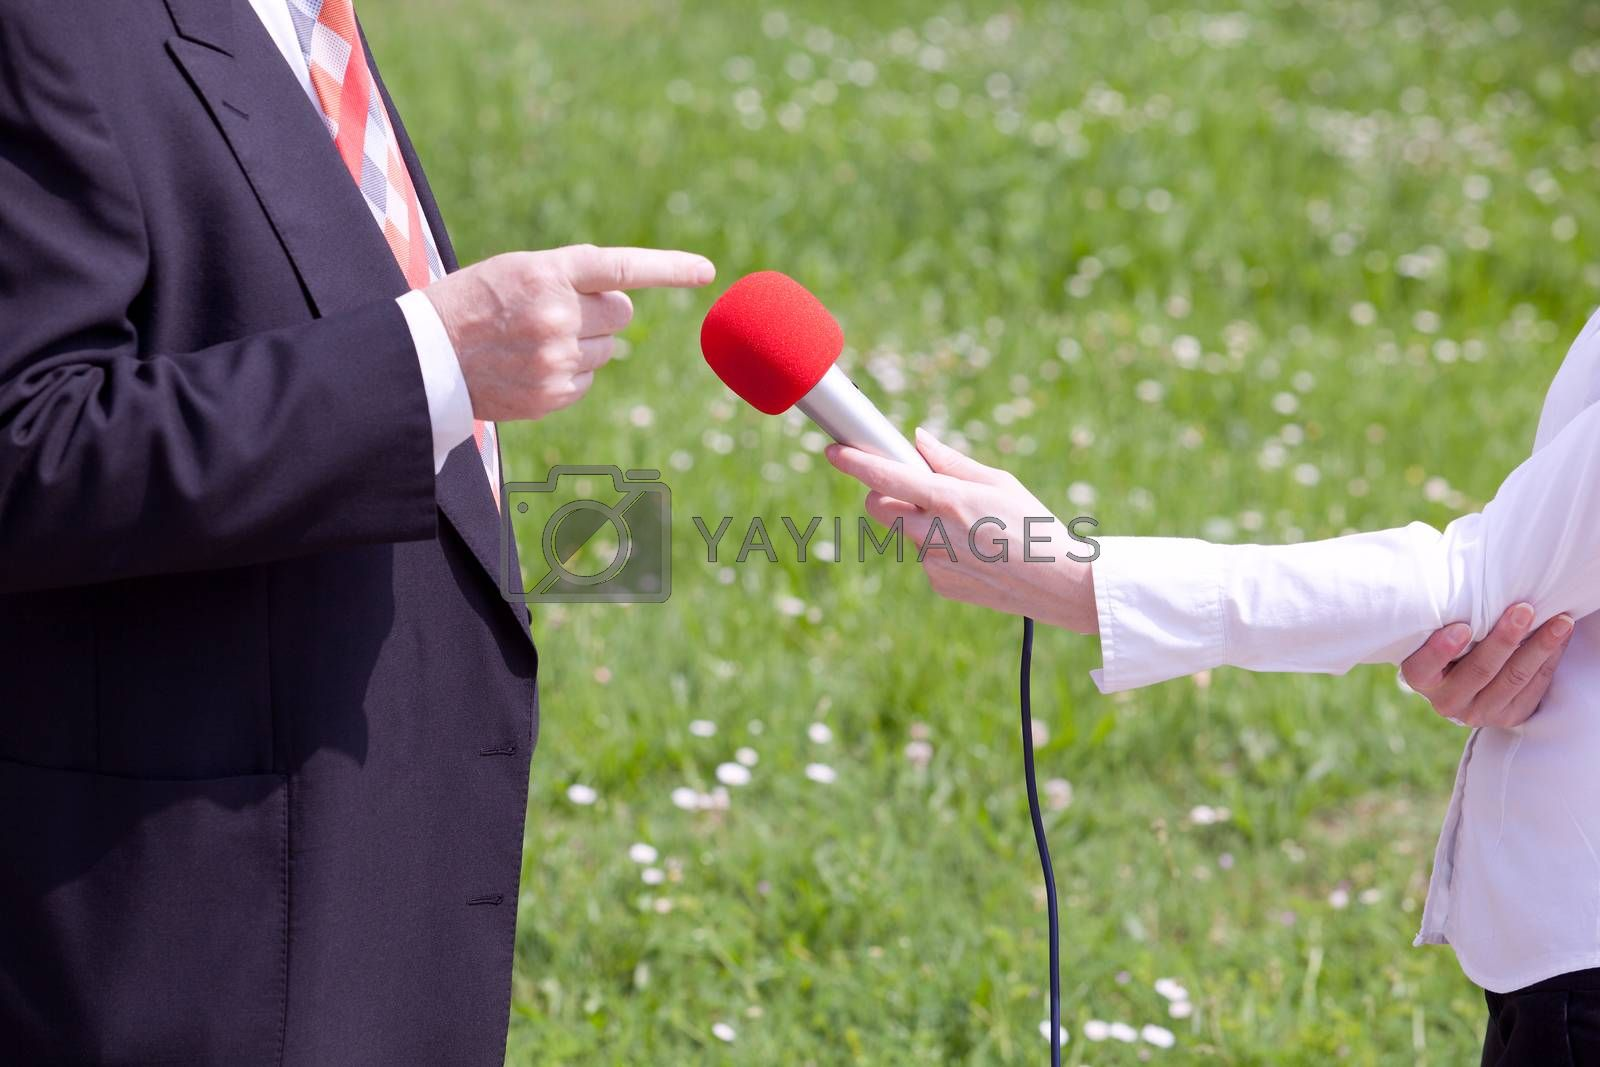 Female reporter making interview with businessperson or politician